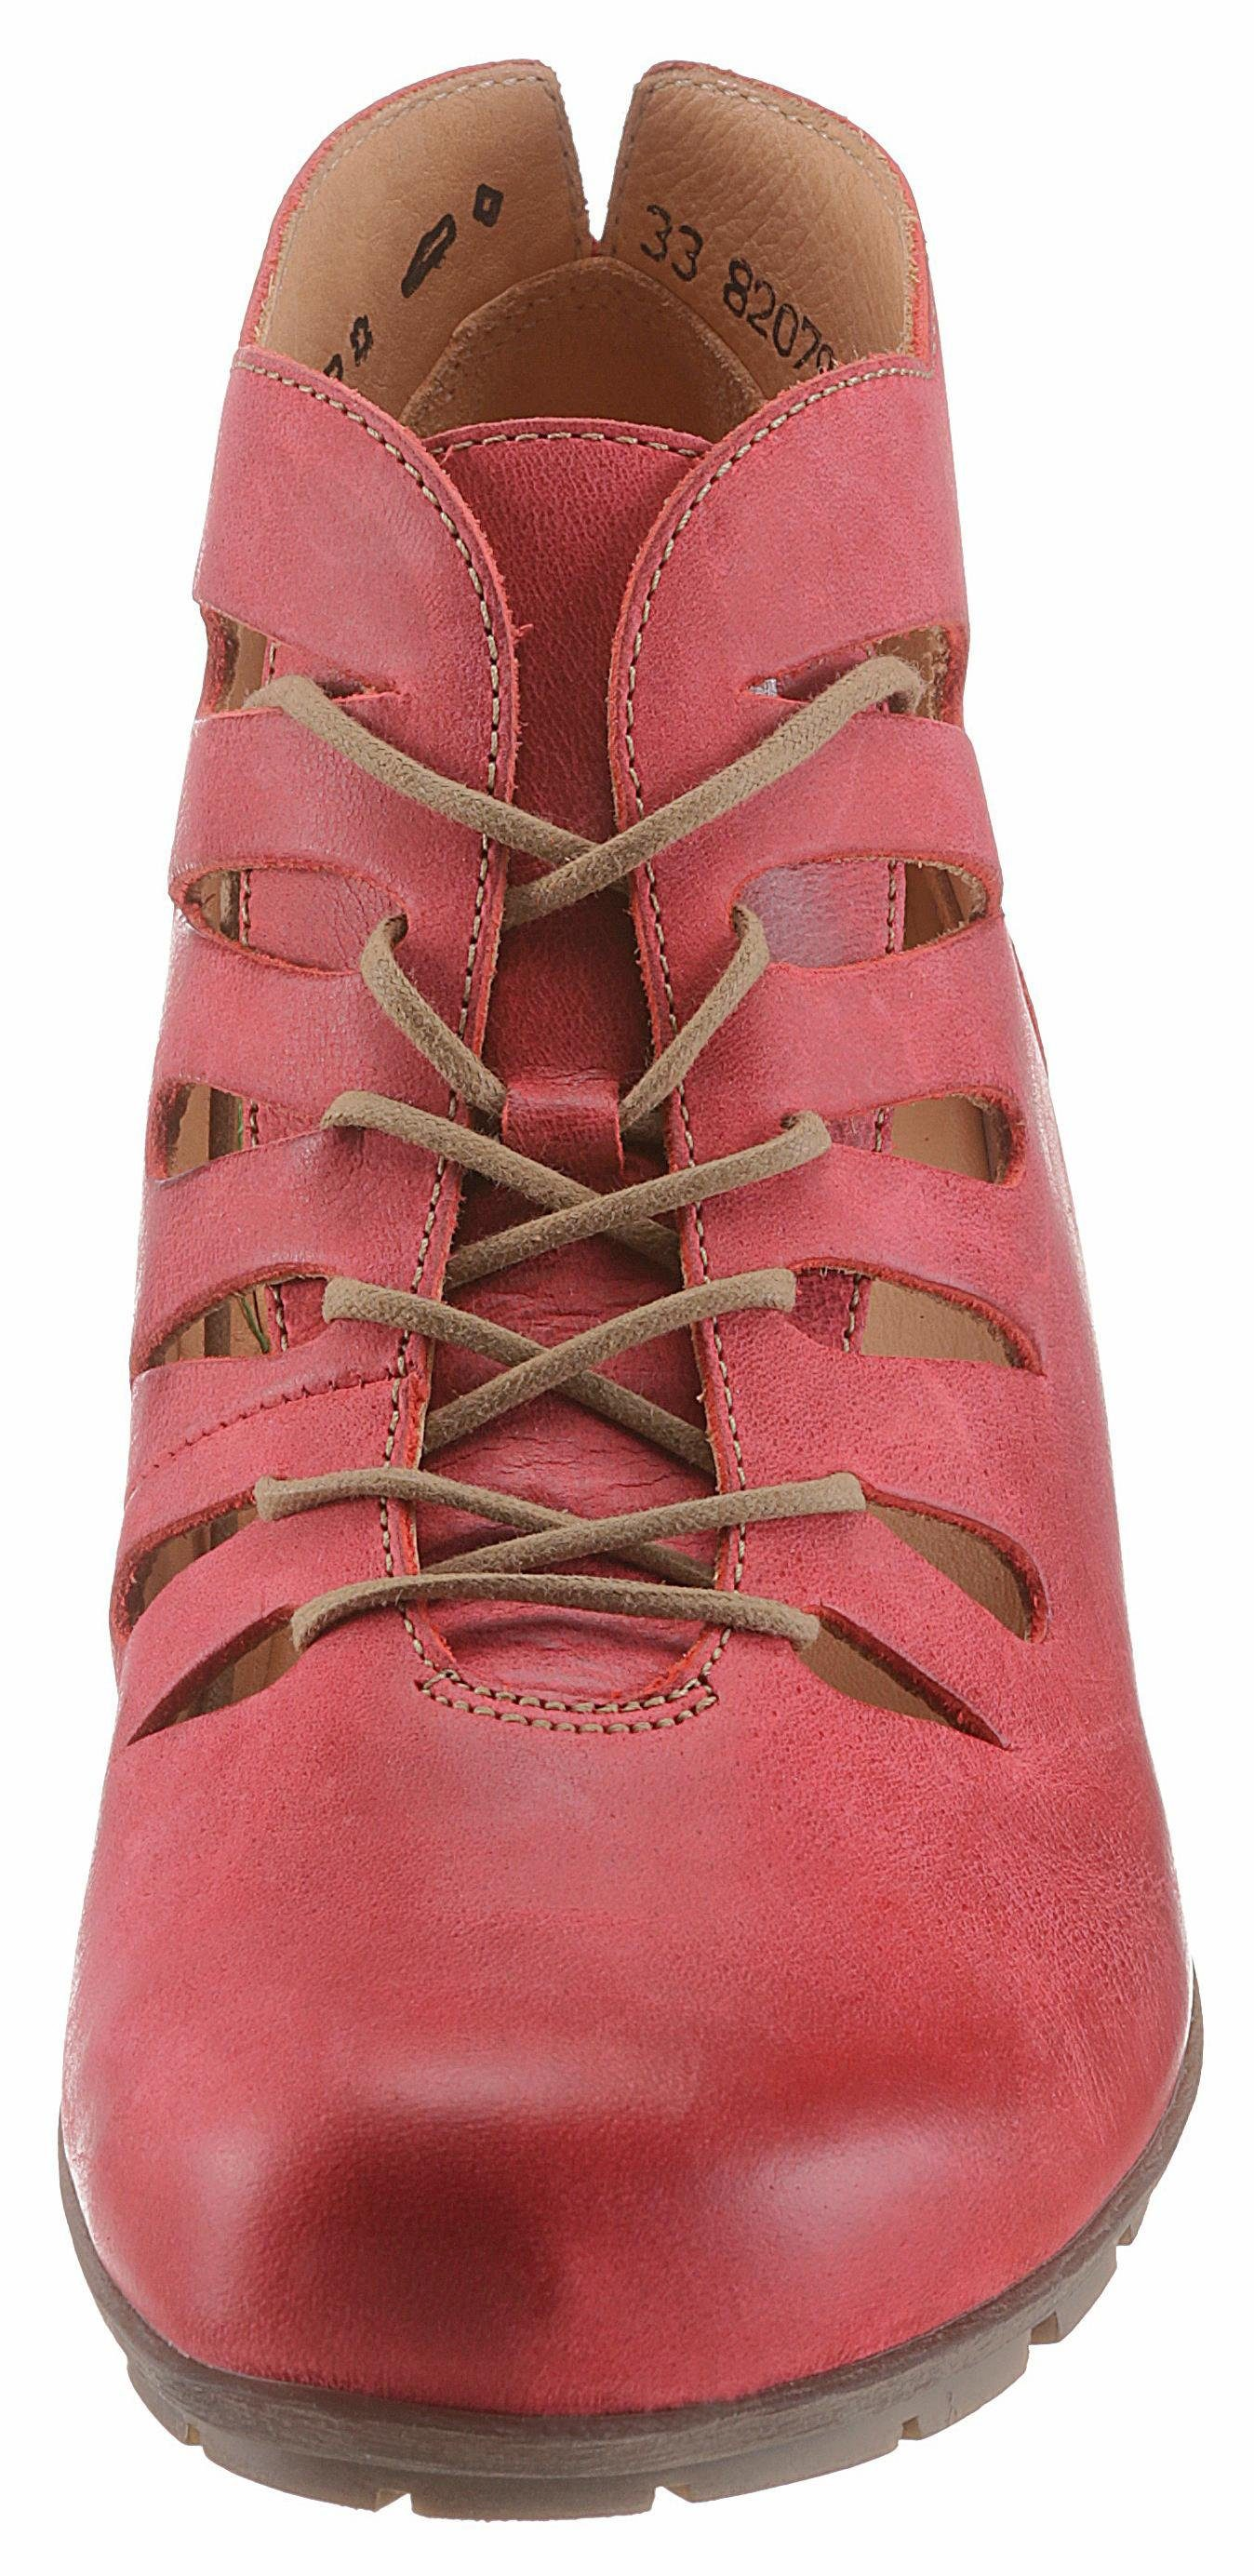 Mode >4548 Think! Sommerboots Sommerboots Think! in Sacchetto-Machart b69d7a